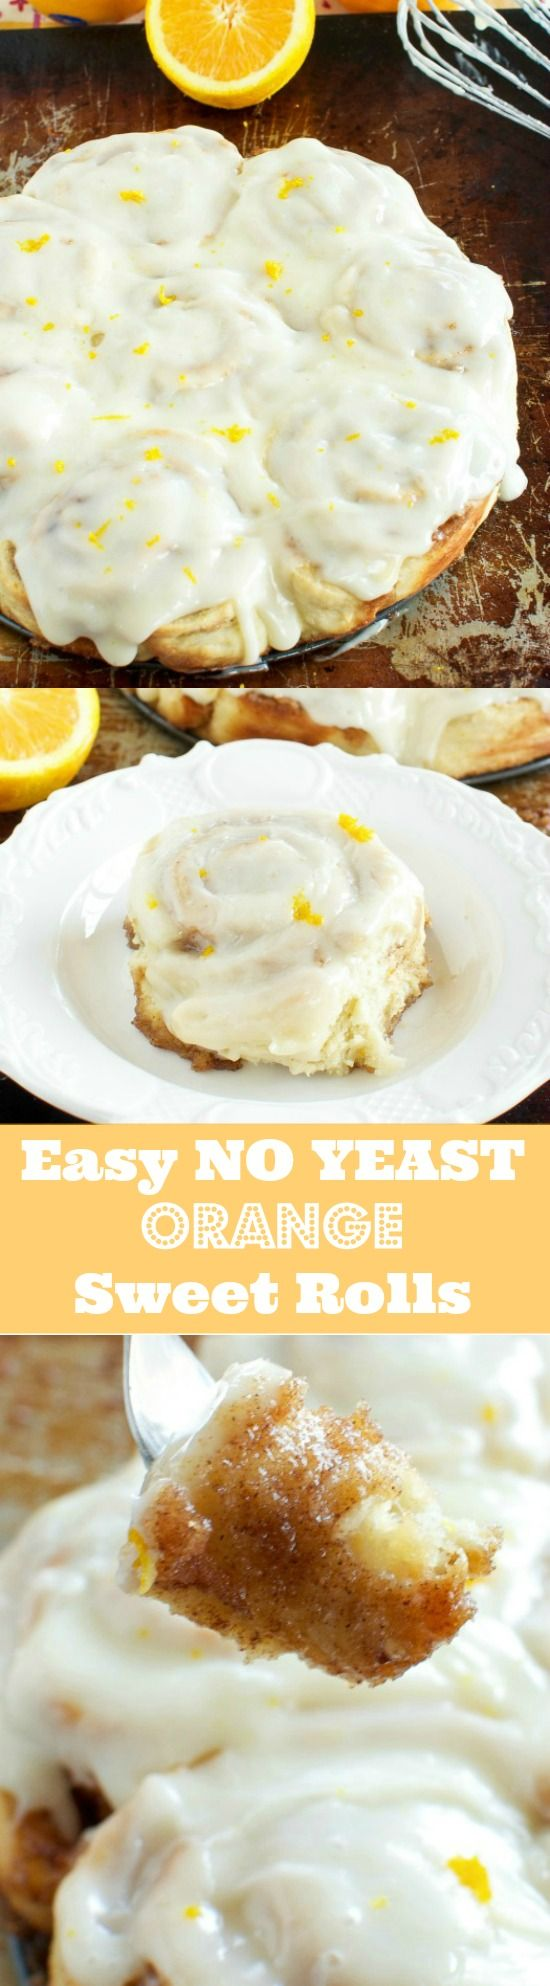 EASY NO YEAST ORANGE CINNAMON ROLLS (buttermilk dough)